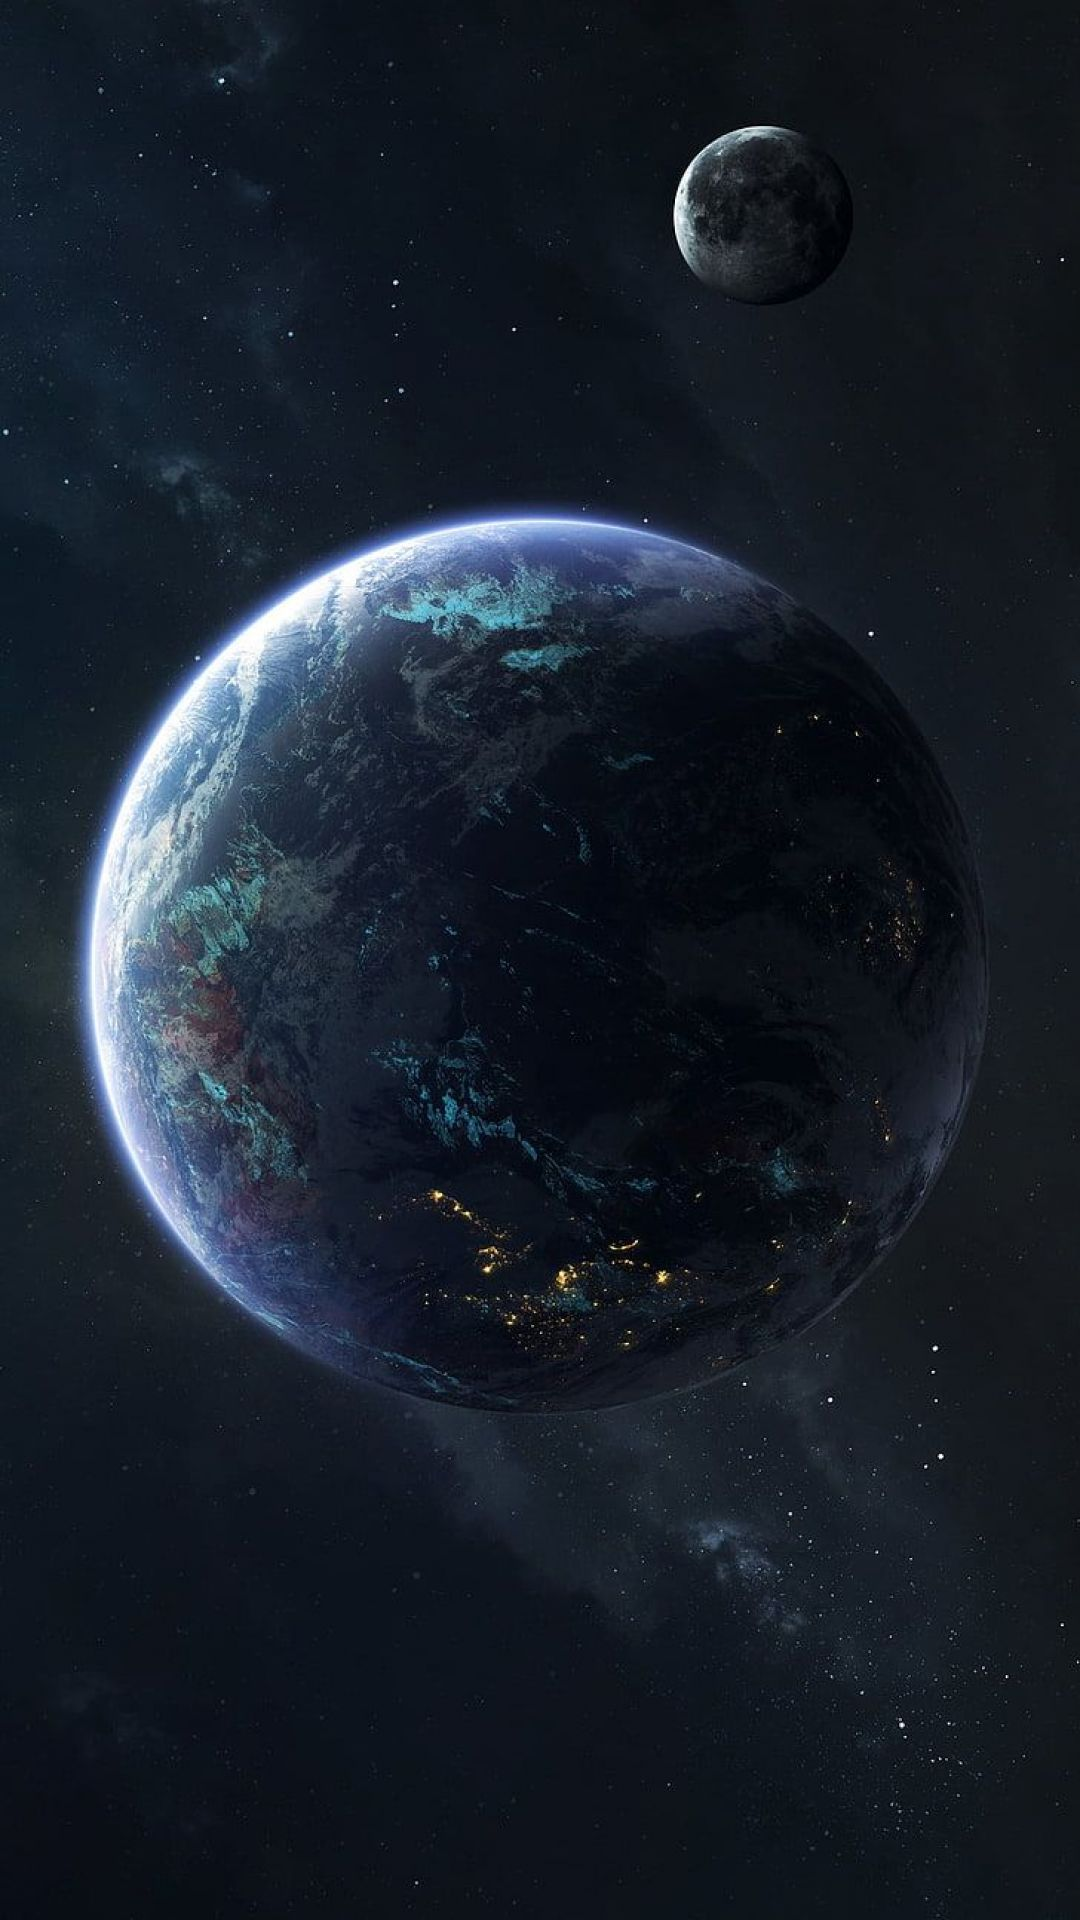 Planet Earth Abstract Android Iphone Desktop Hd Backgrounds Wallpapers 1080p 4k 100035 Hdwallpa Planets Wallpaper Space Art Solar System Wallpaper